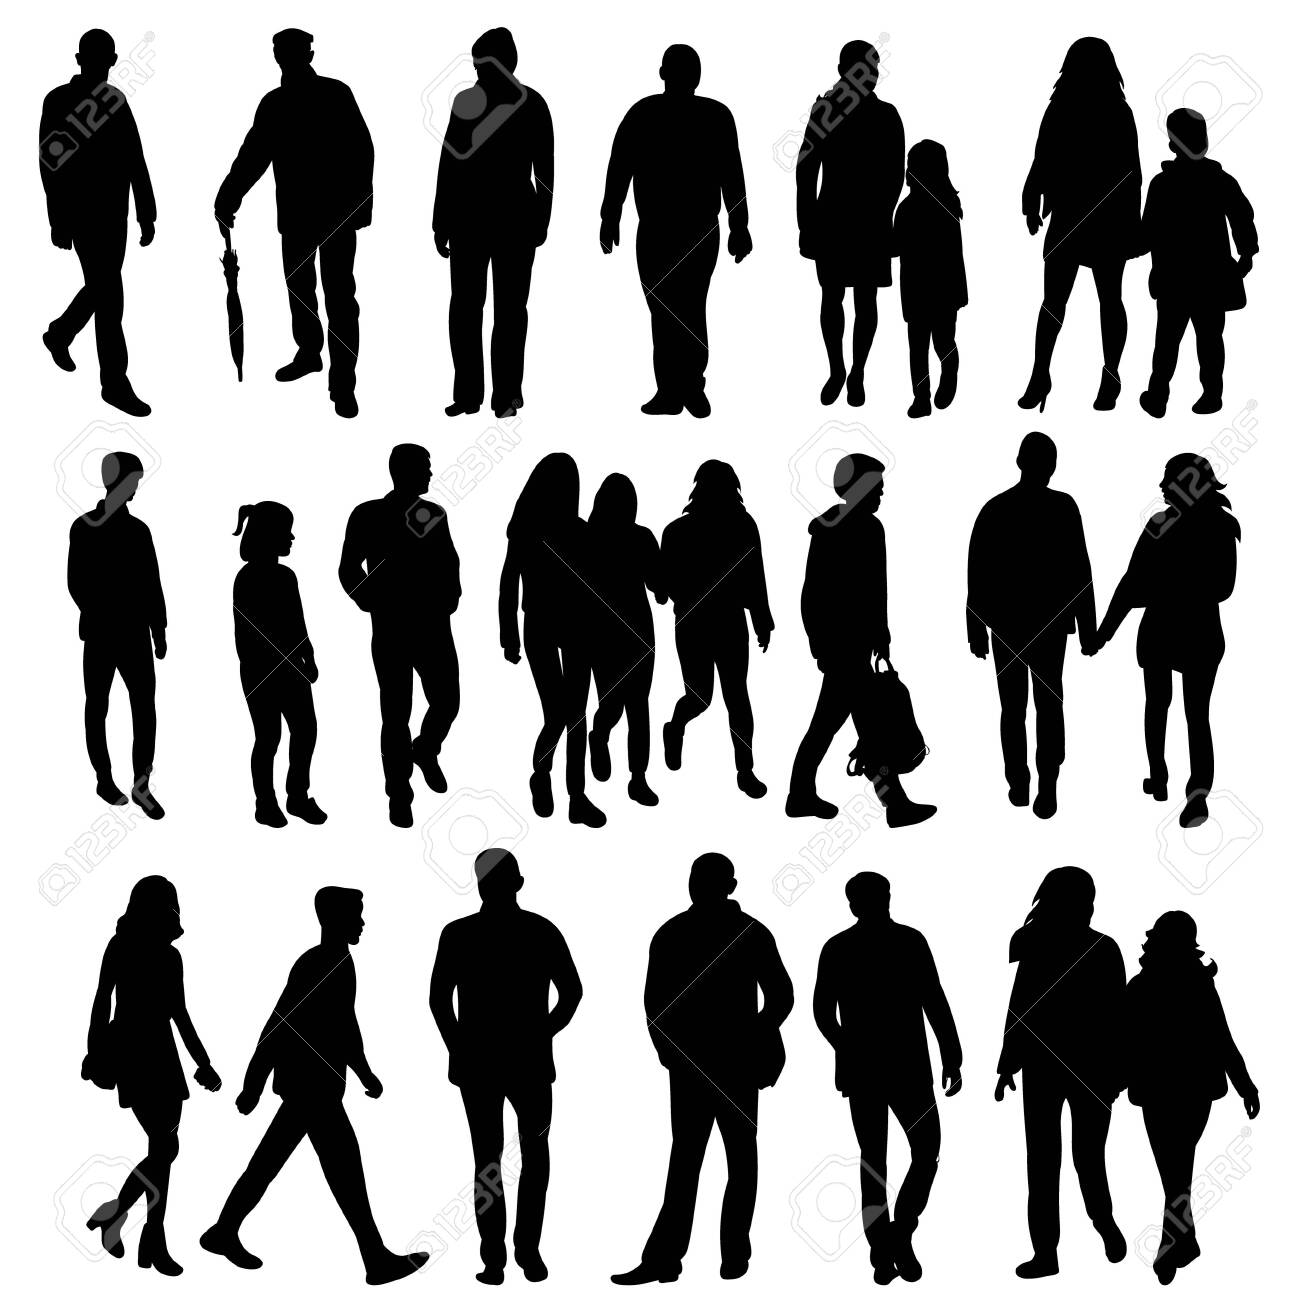 isolated collection of silhouettes of walking people - 150125818